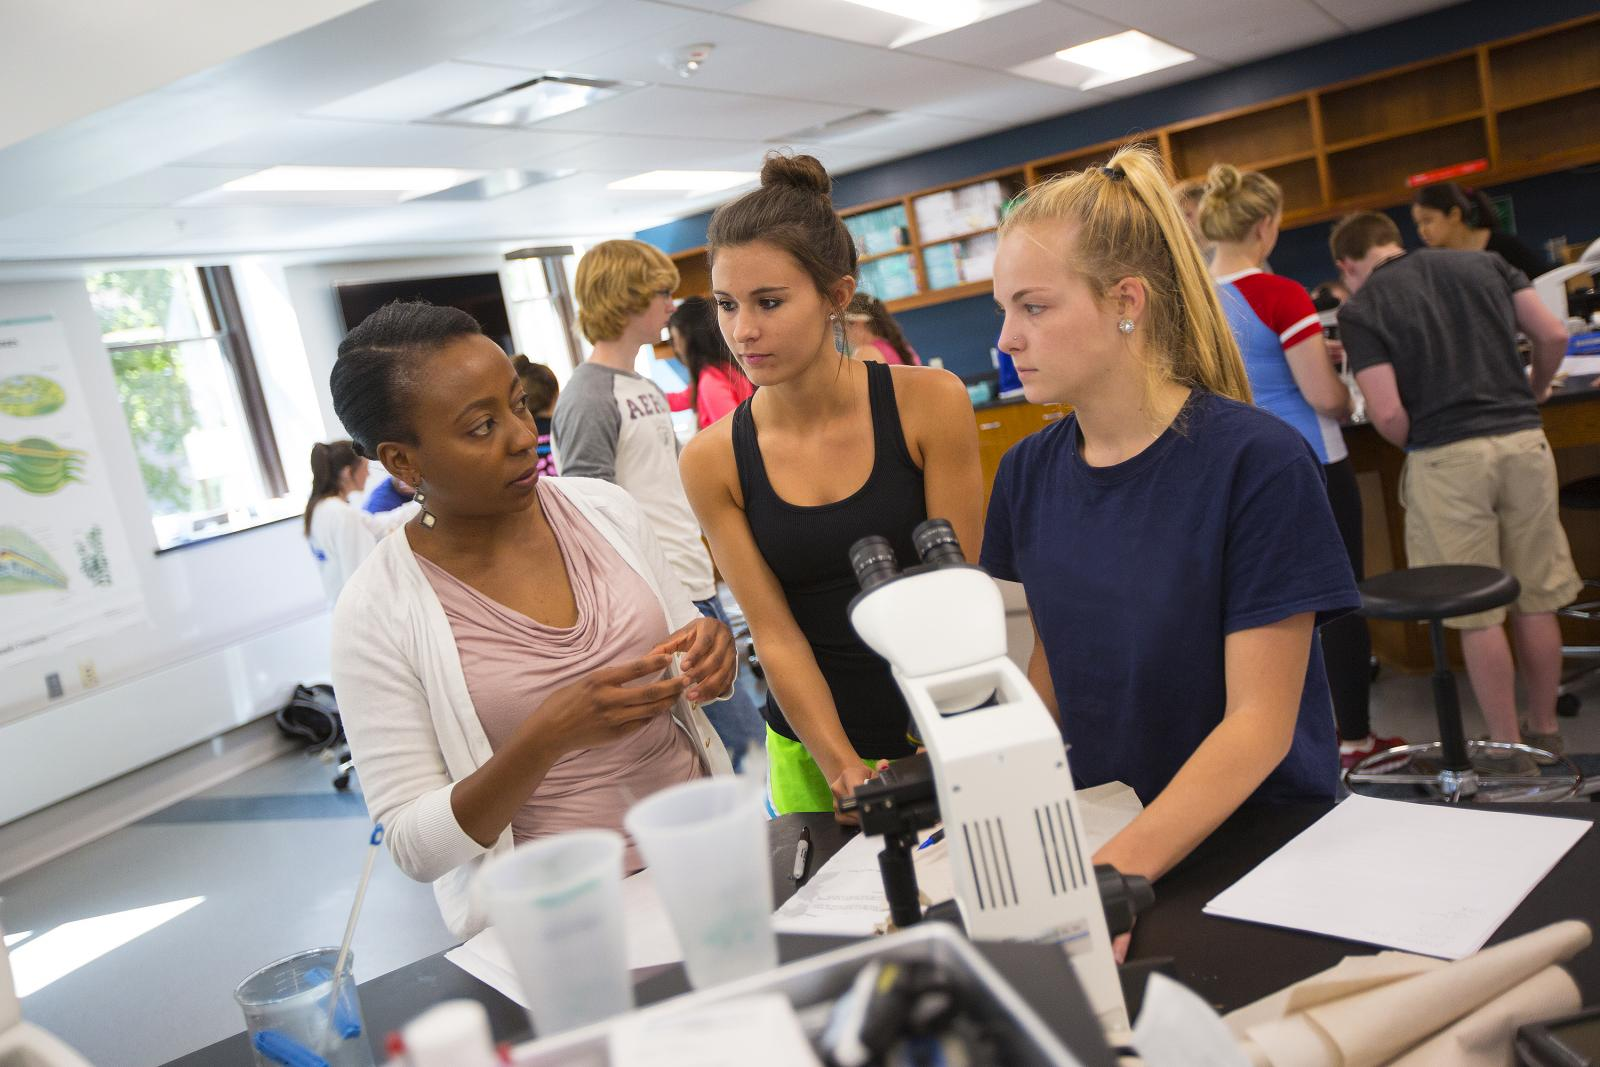 At the University of Nebraska-Lincoln, opportunities abound with research, extracurricular activities and a friendly community.